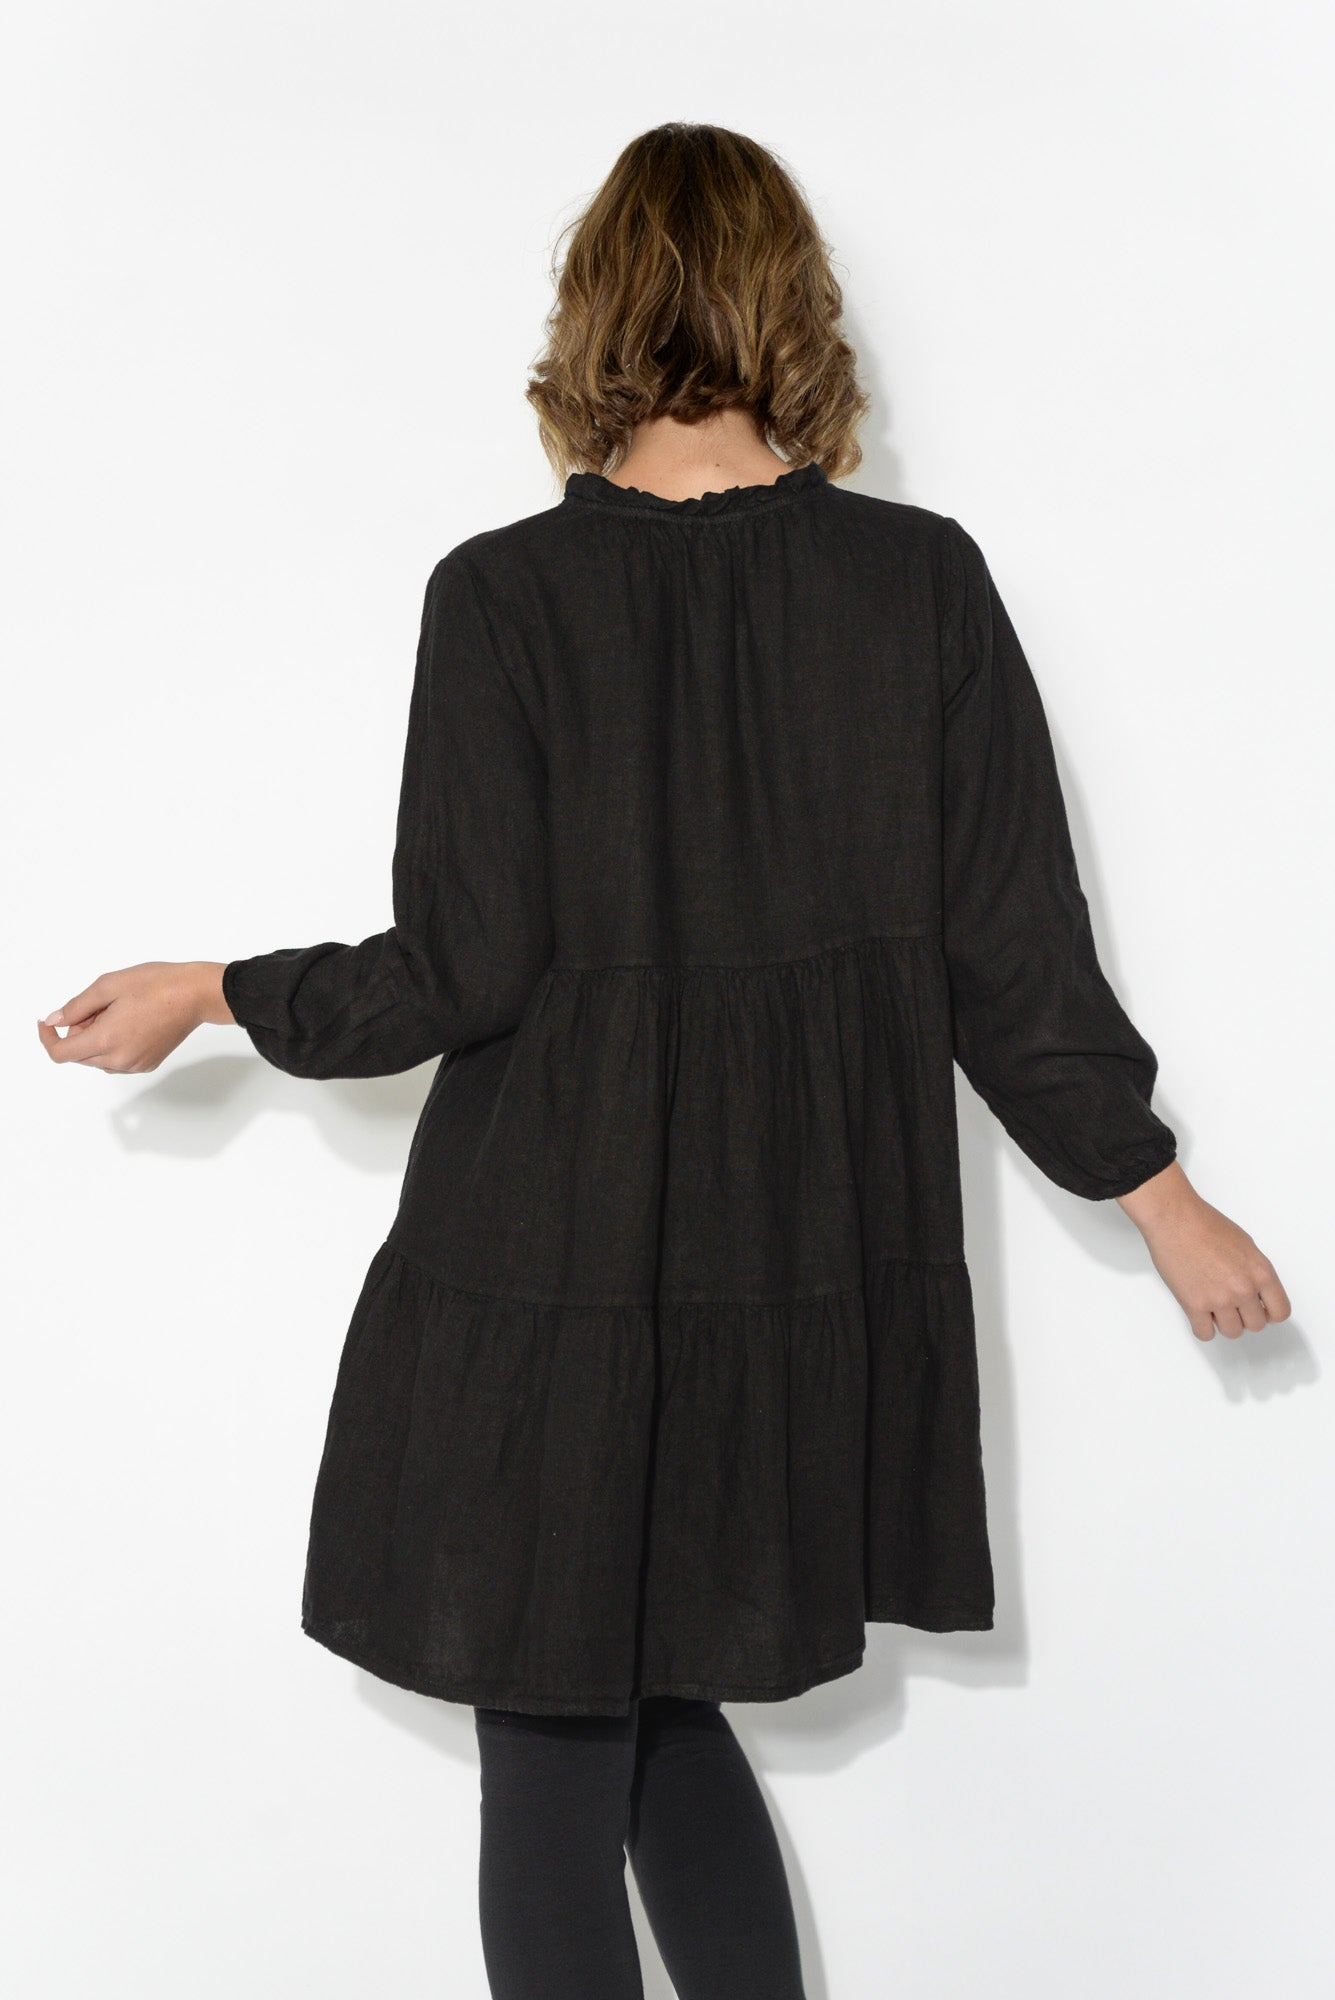 Kayla Black Linen Tunic Top